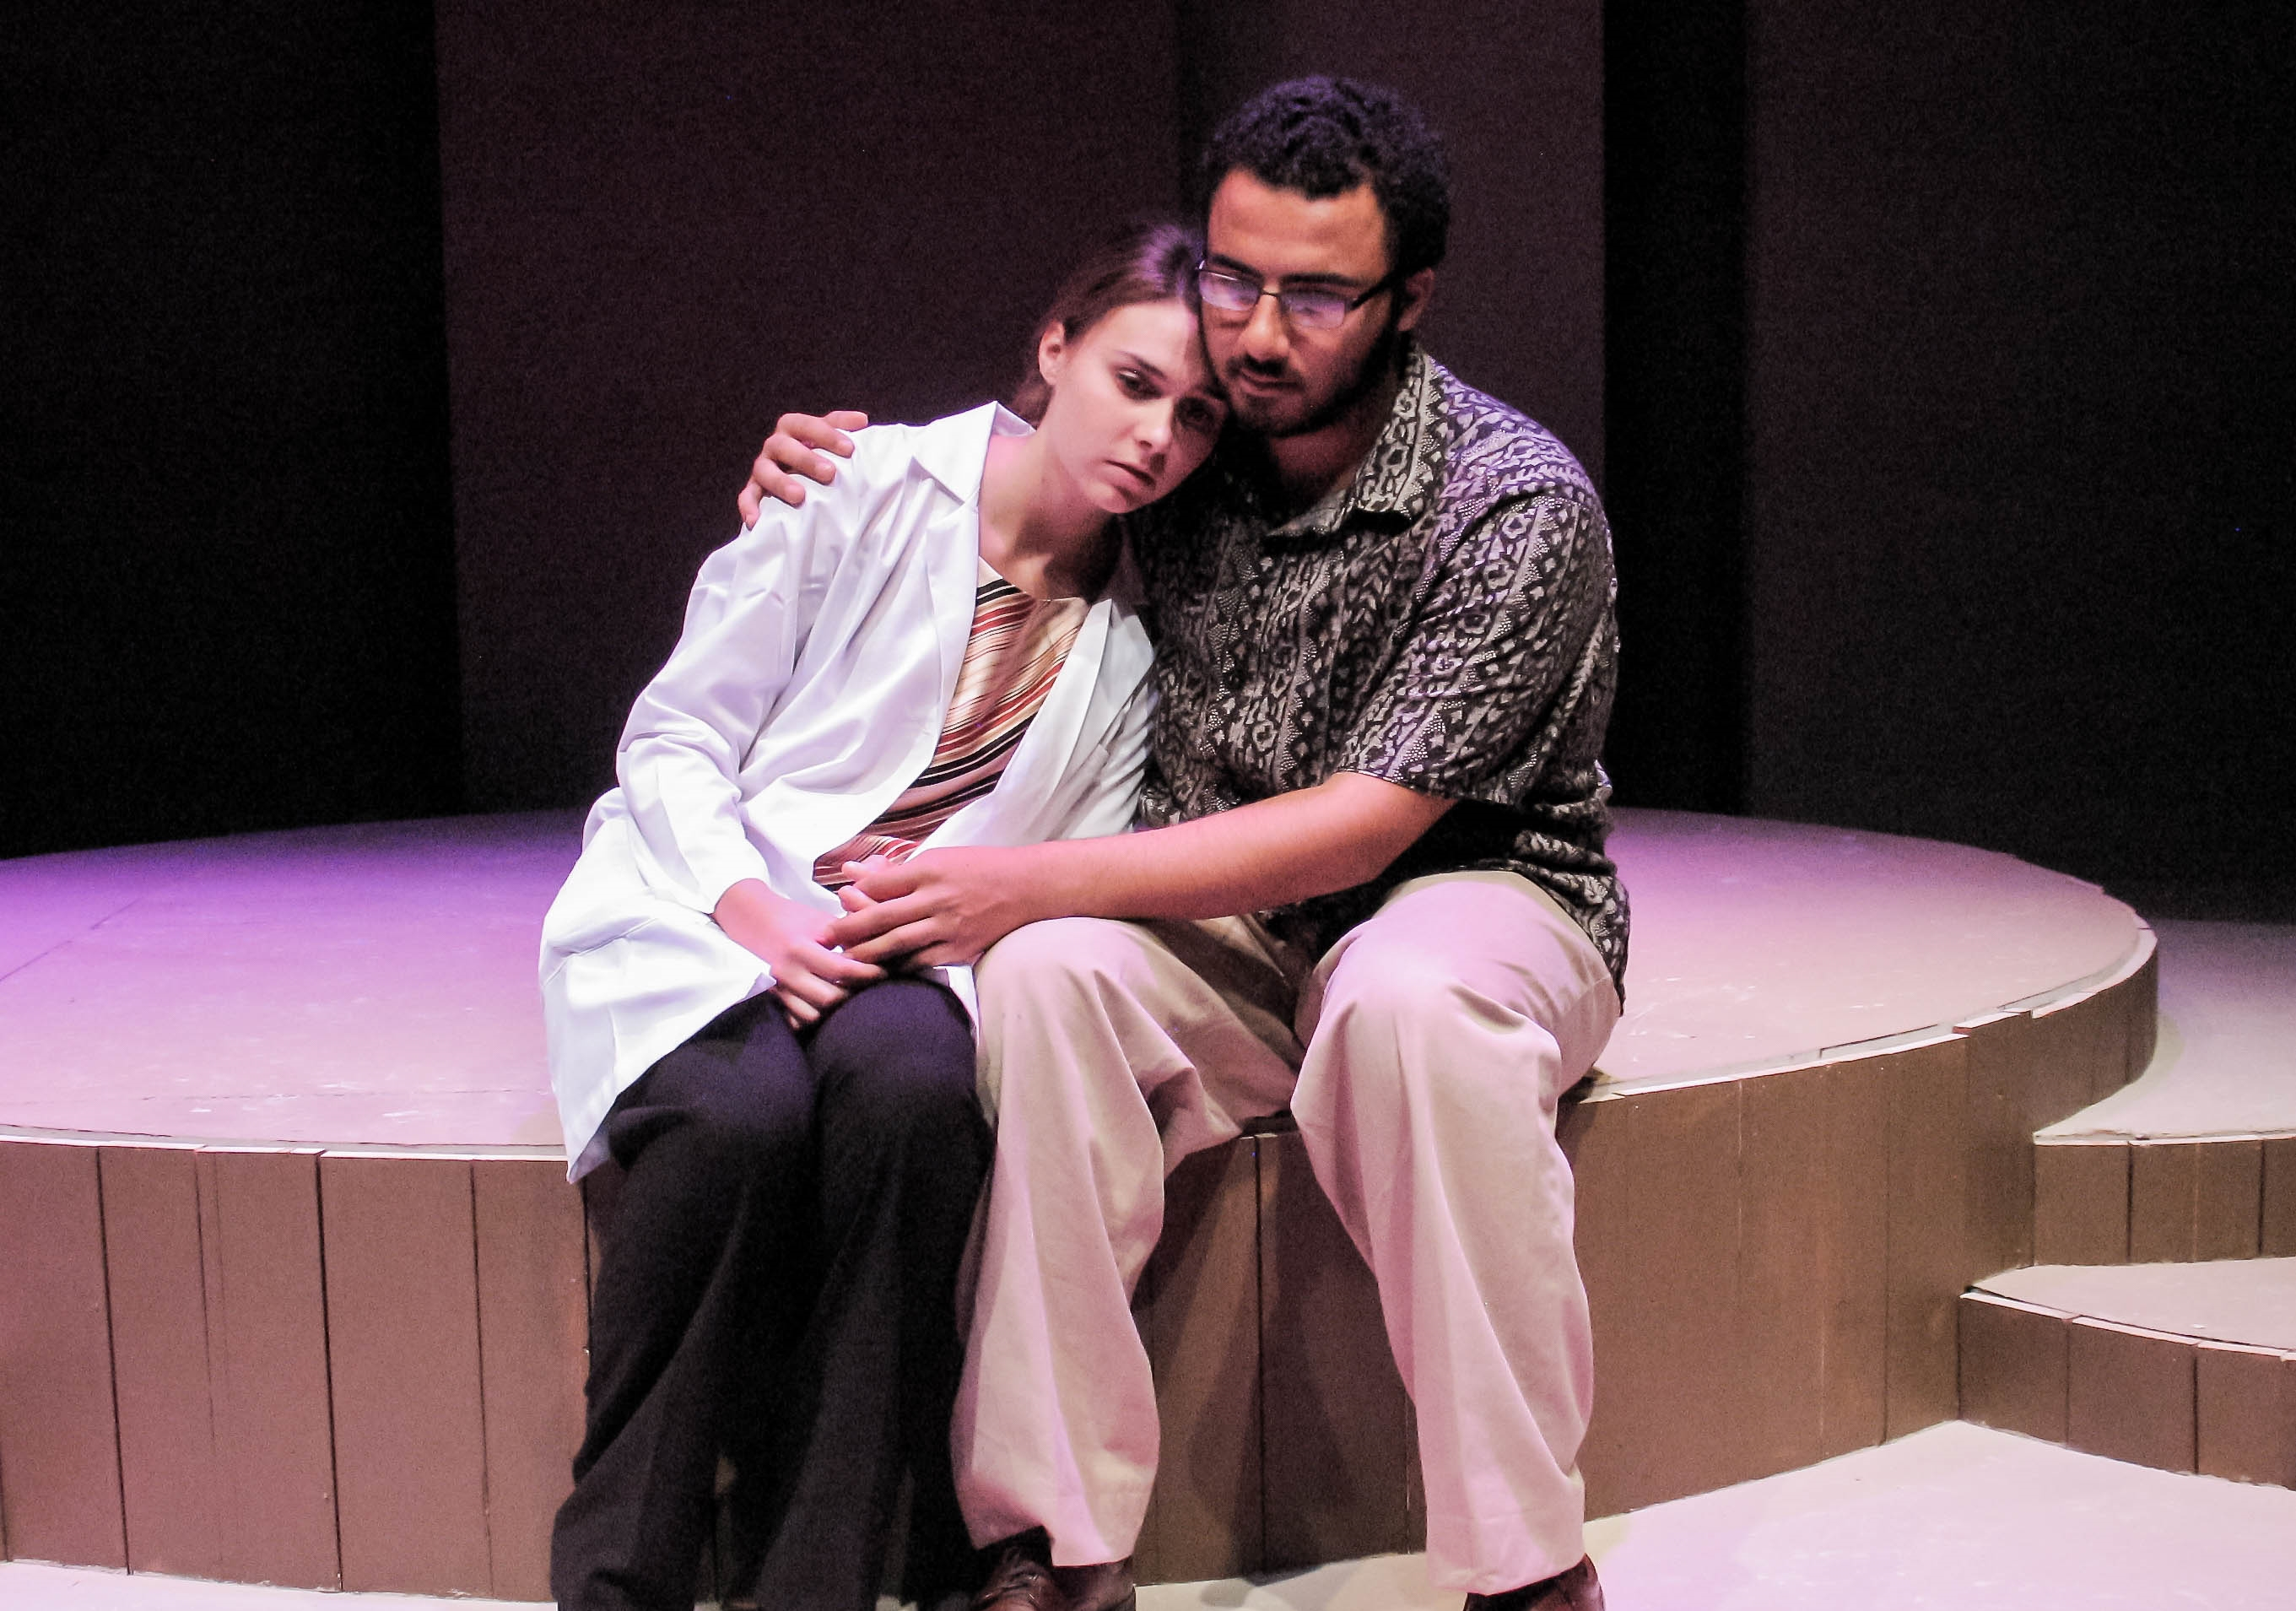 Mount Union students performing on stage in Informed Consent